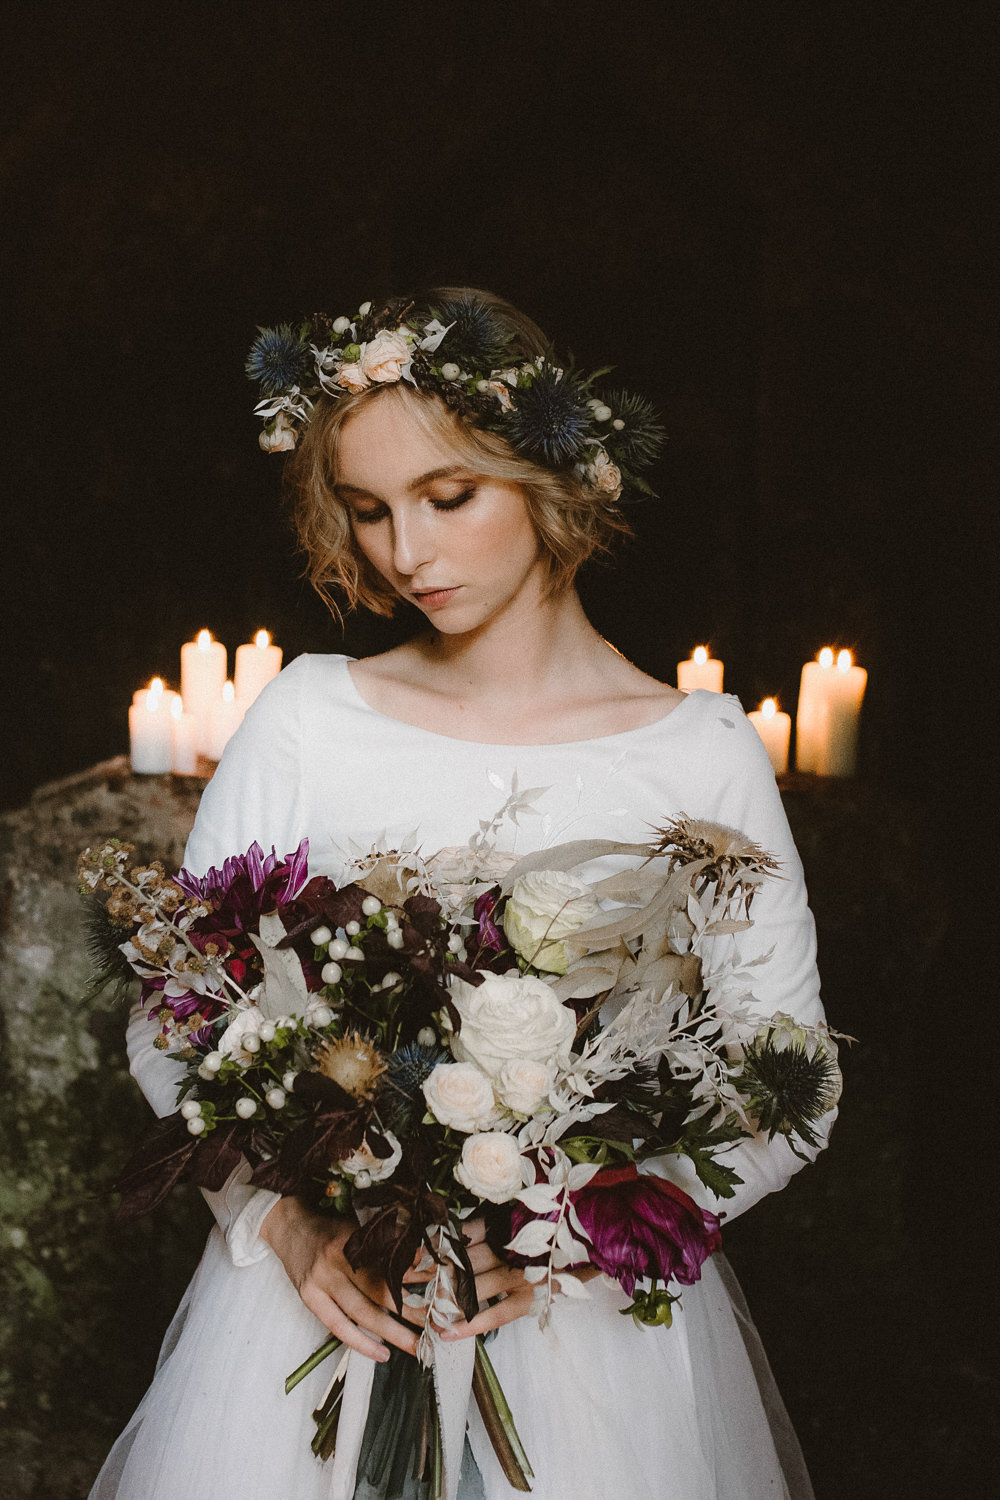 Bouquet Flowers Bride Bridal Rose Dahlia Thistle Ribbon Flower CrownEthereal Candlelit Wedding Ideas Ortica Wedding